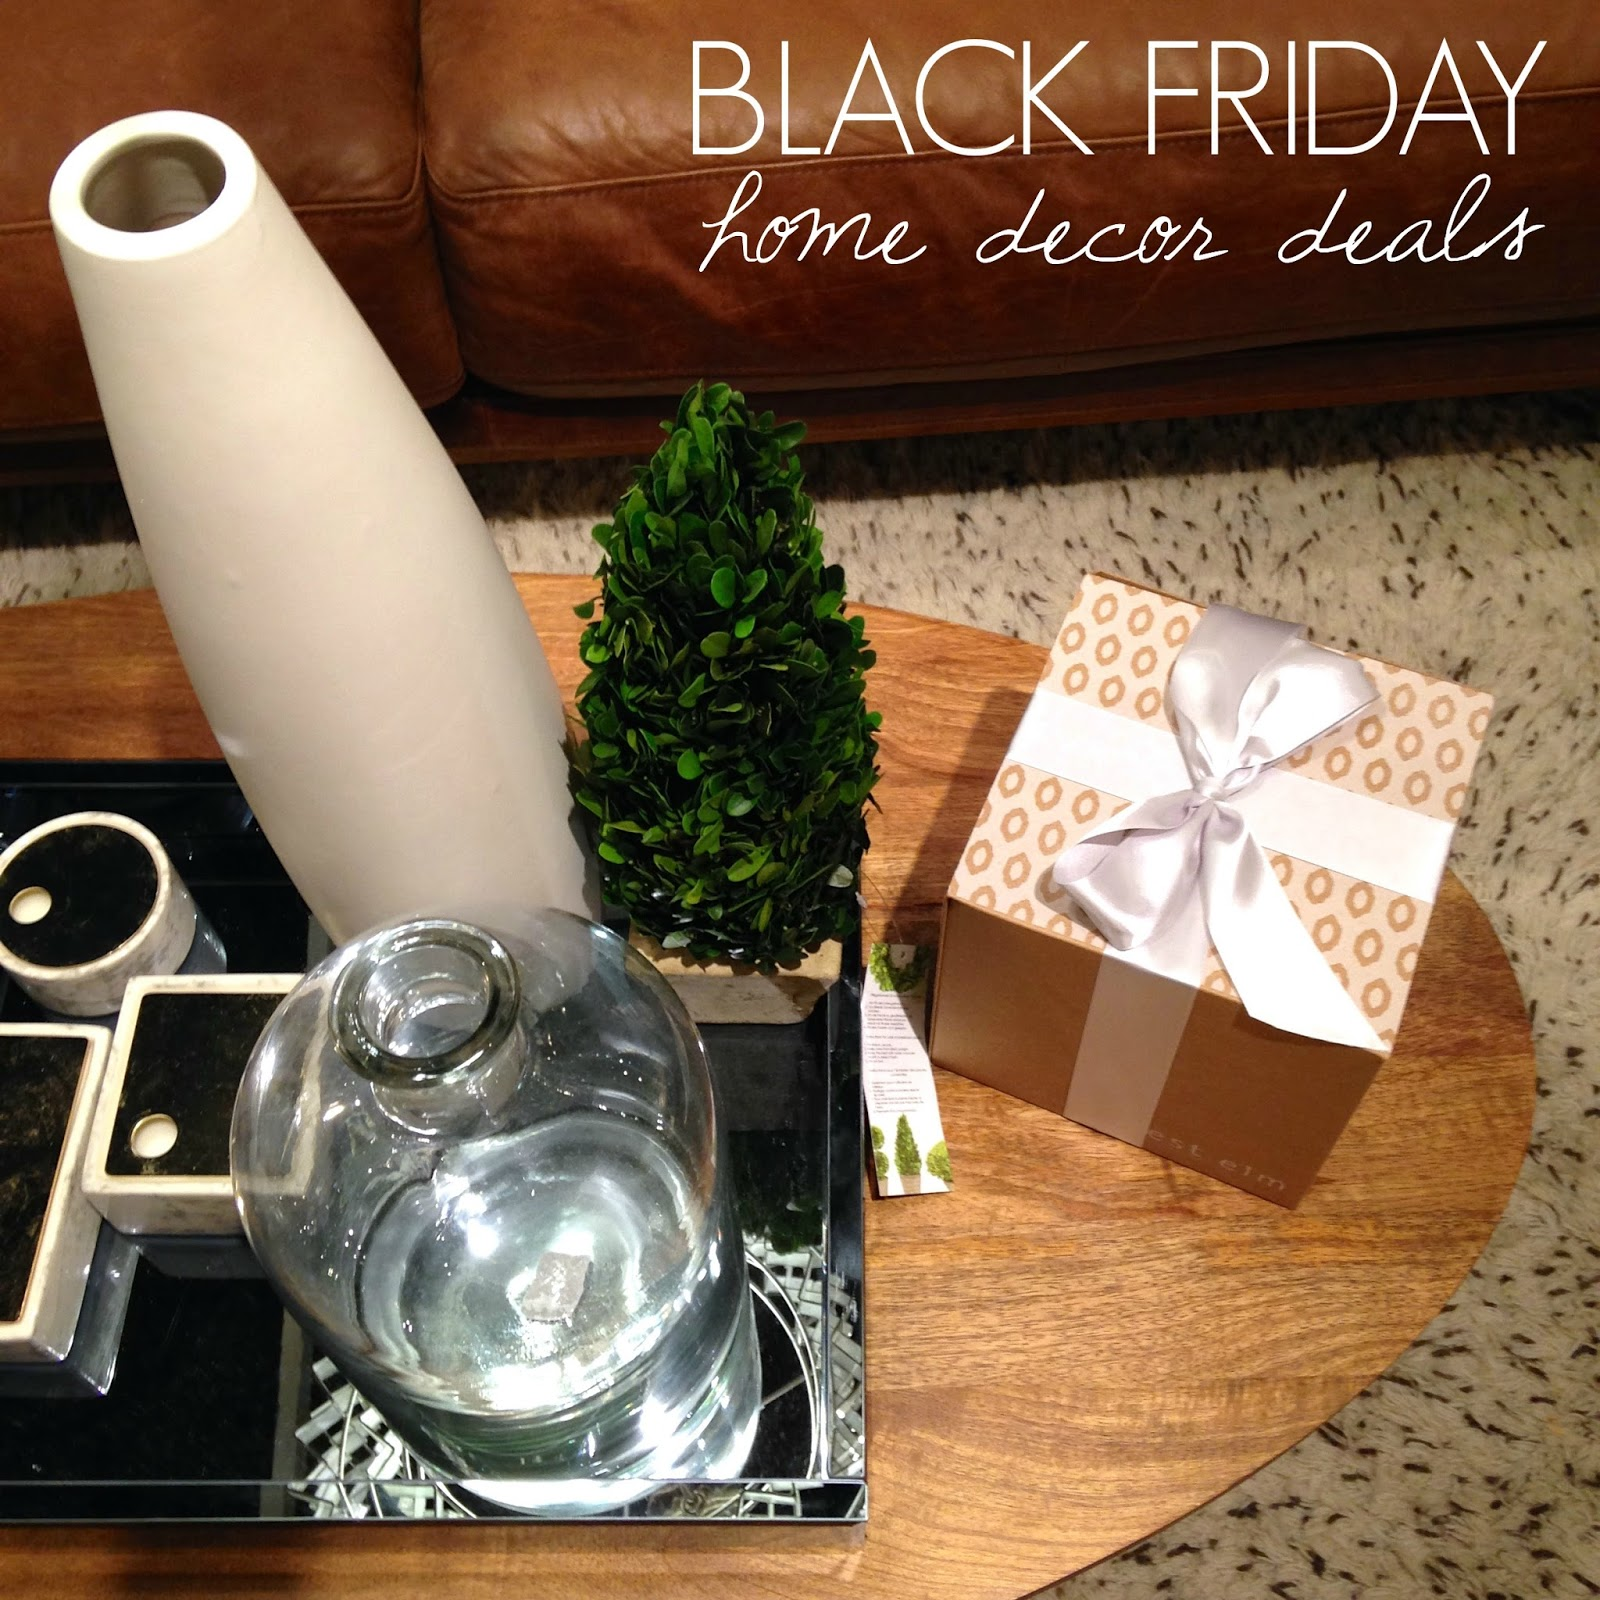 defined designs black friday home decor deals